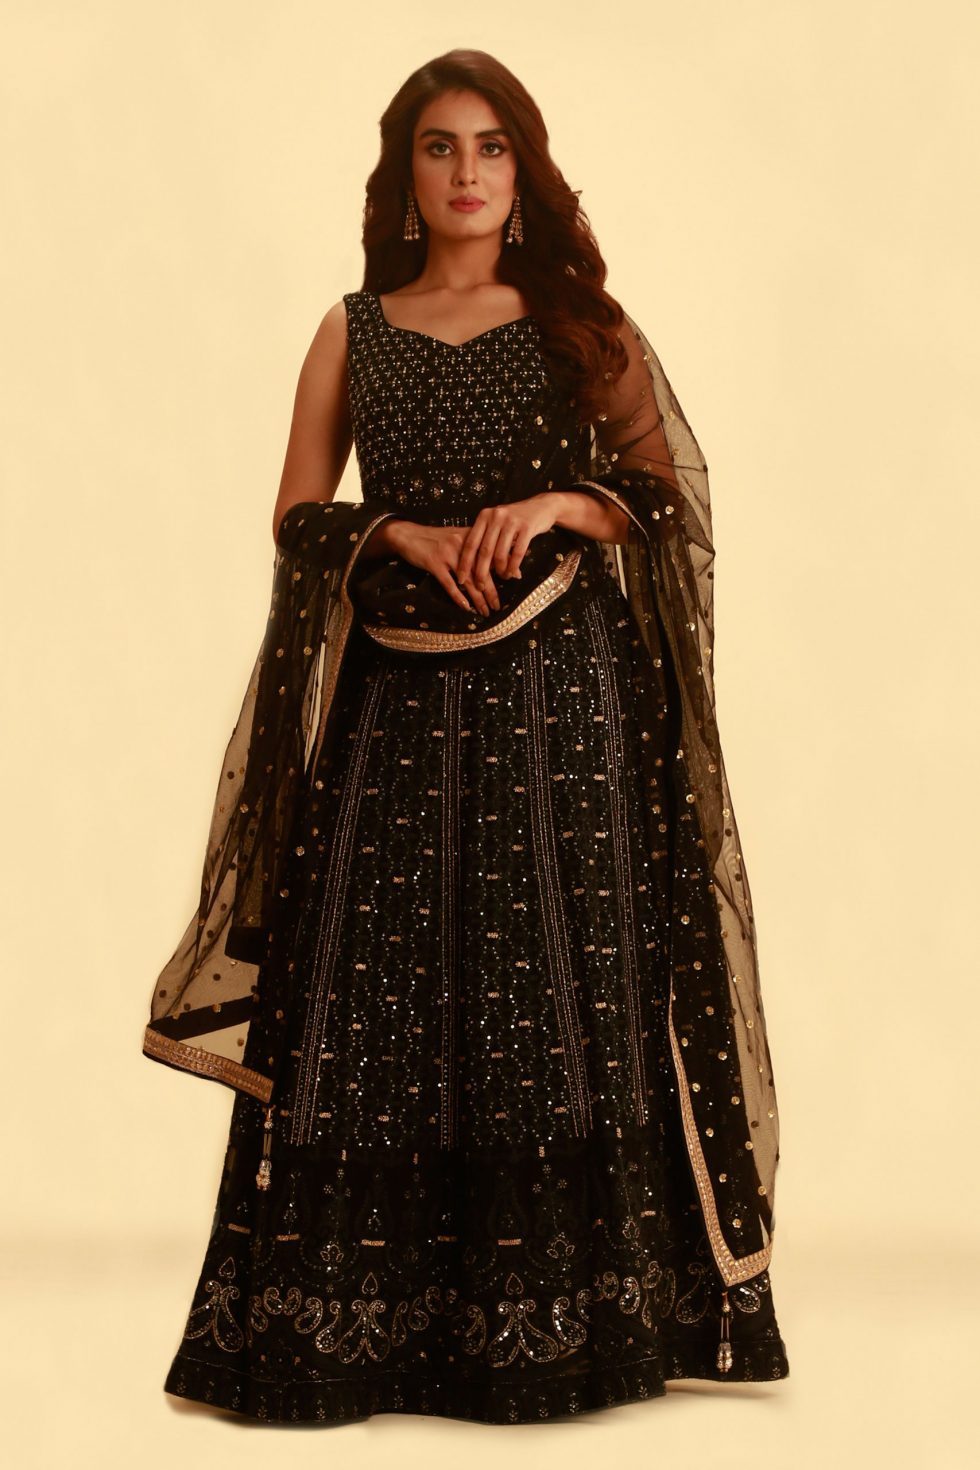 Raven Black Anarkali Gown Set with Gold Embroidery and Matching Dupatta with Butis